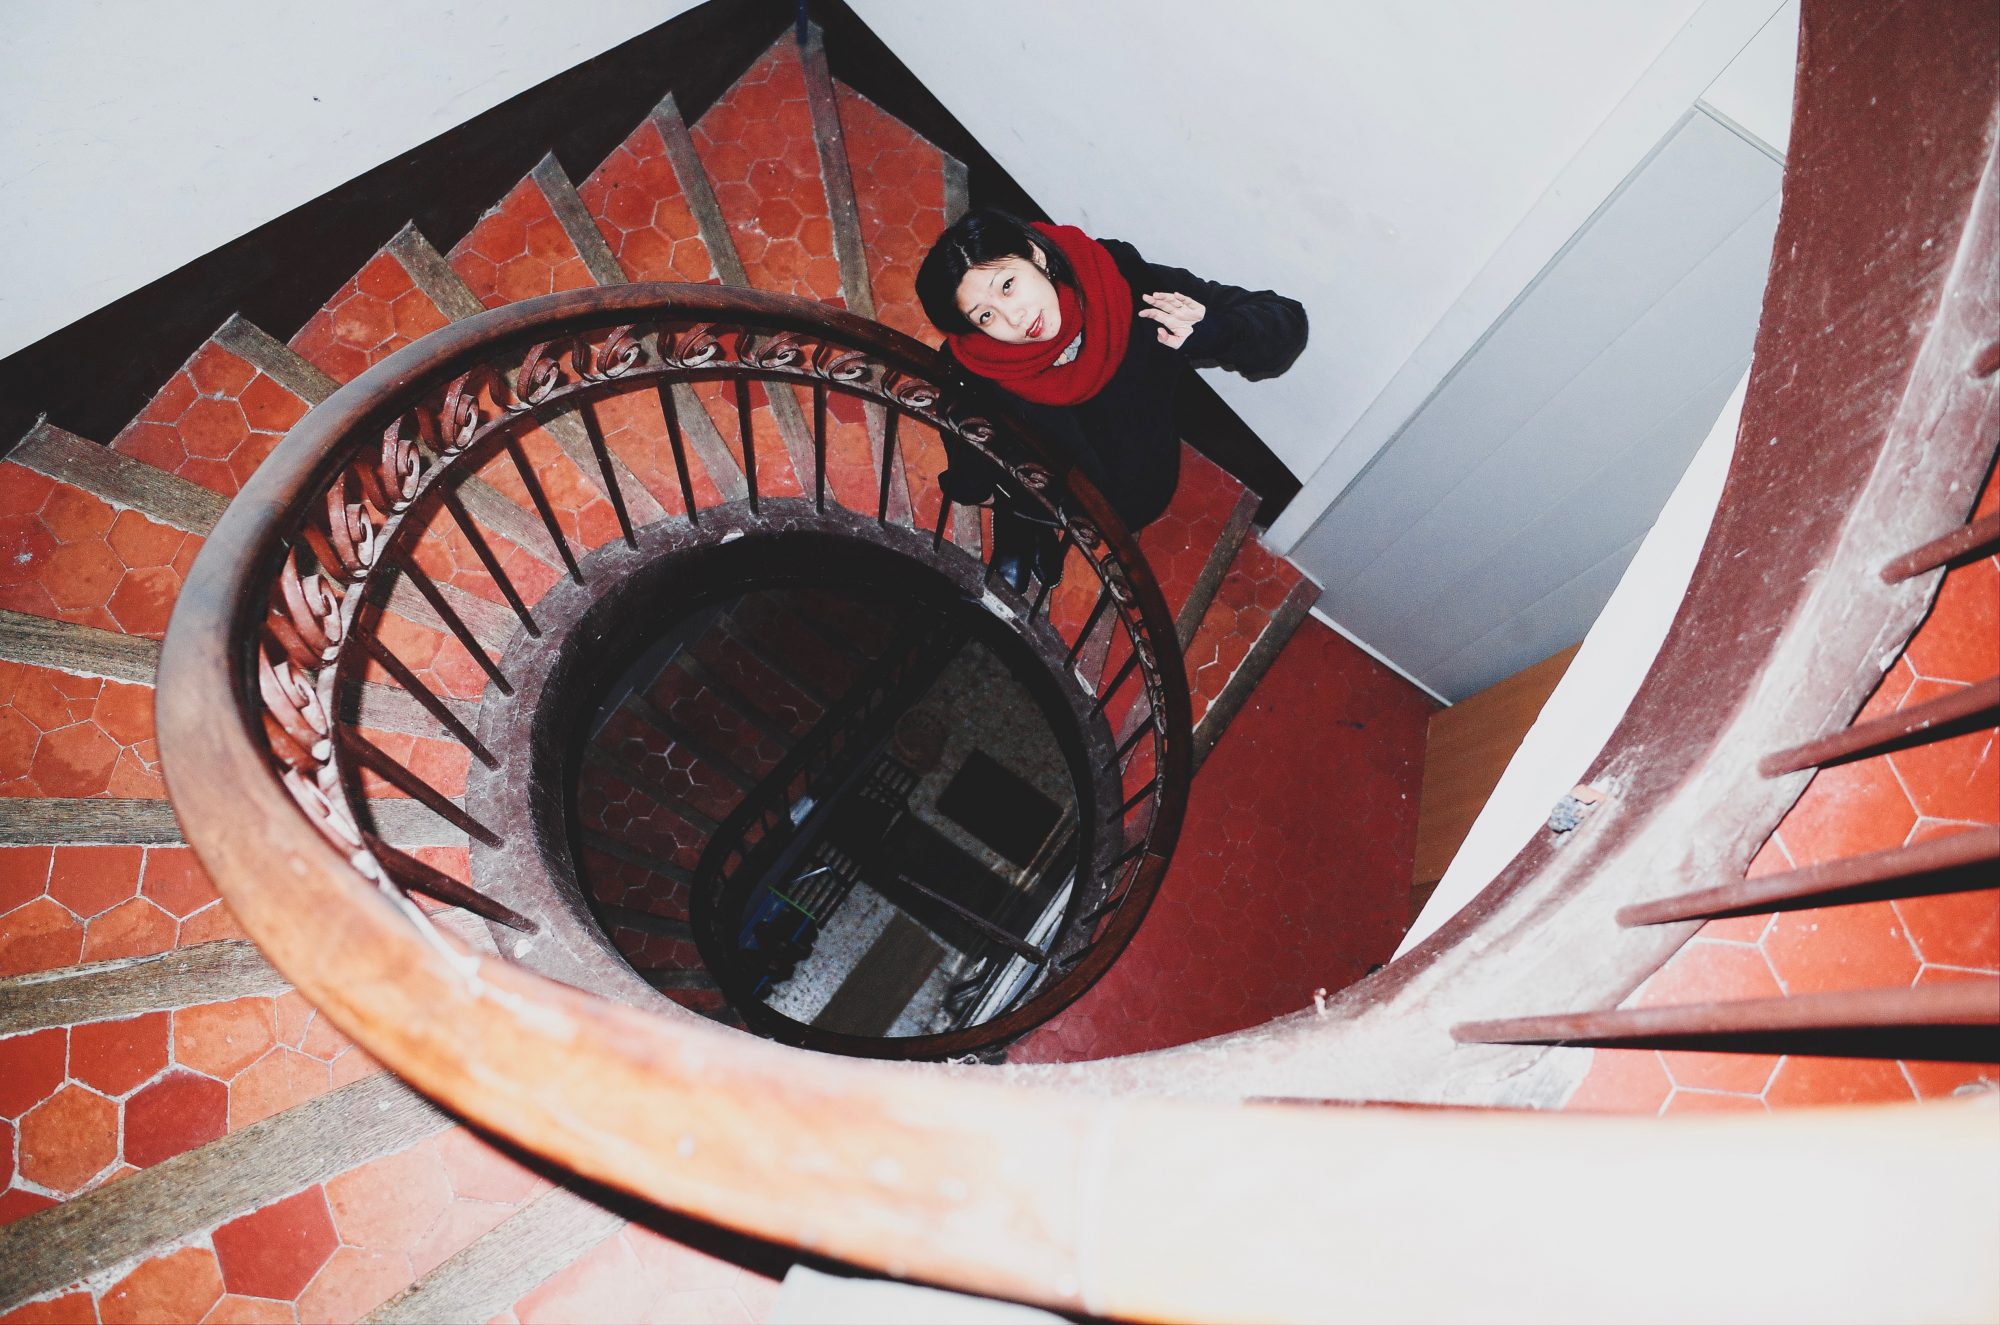 Cindy and spiral staircase. Marseille, 2017